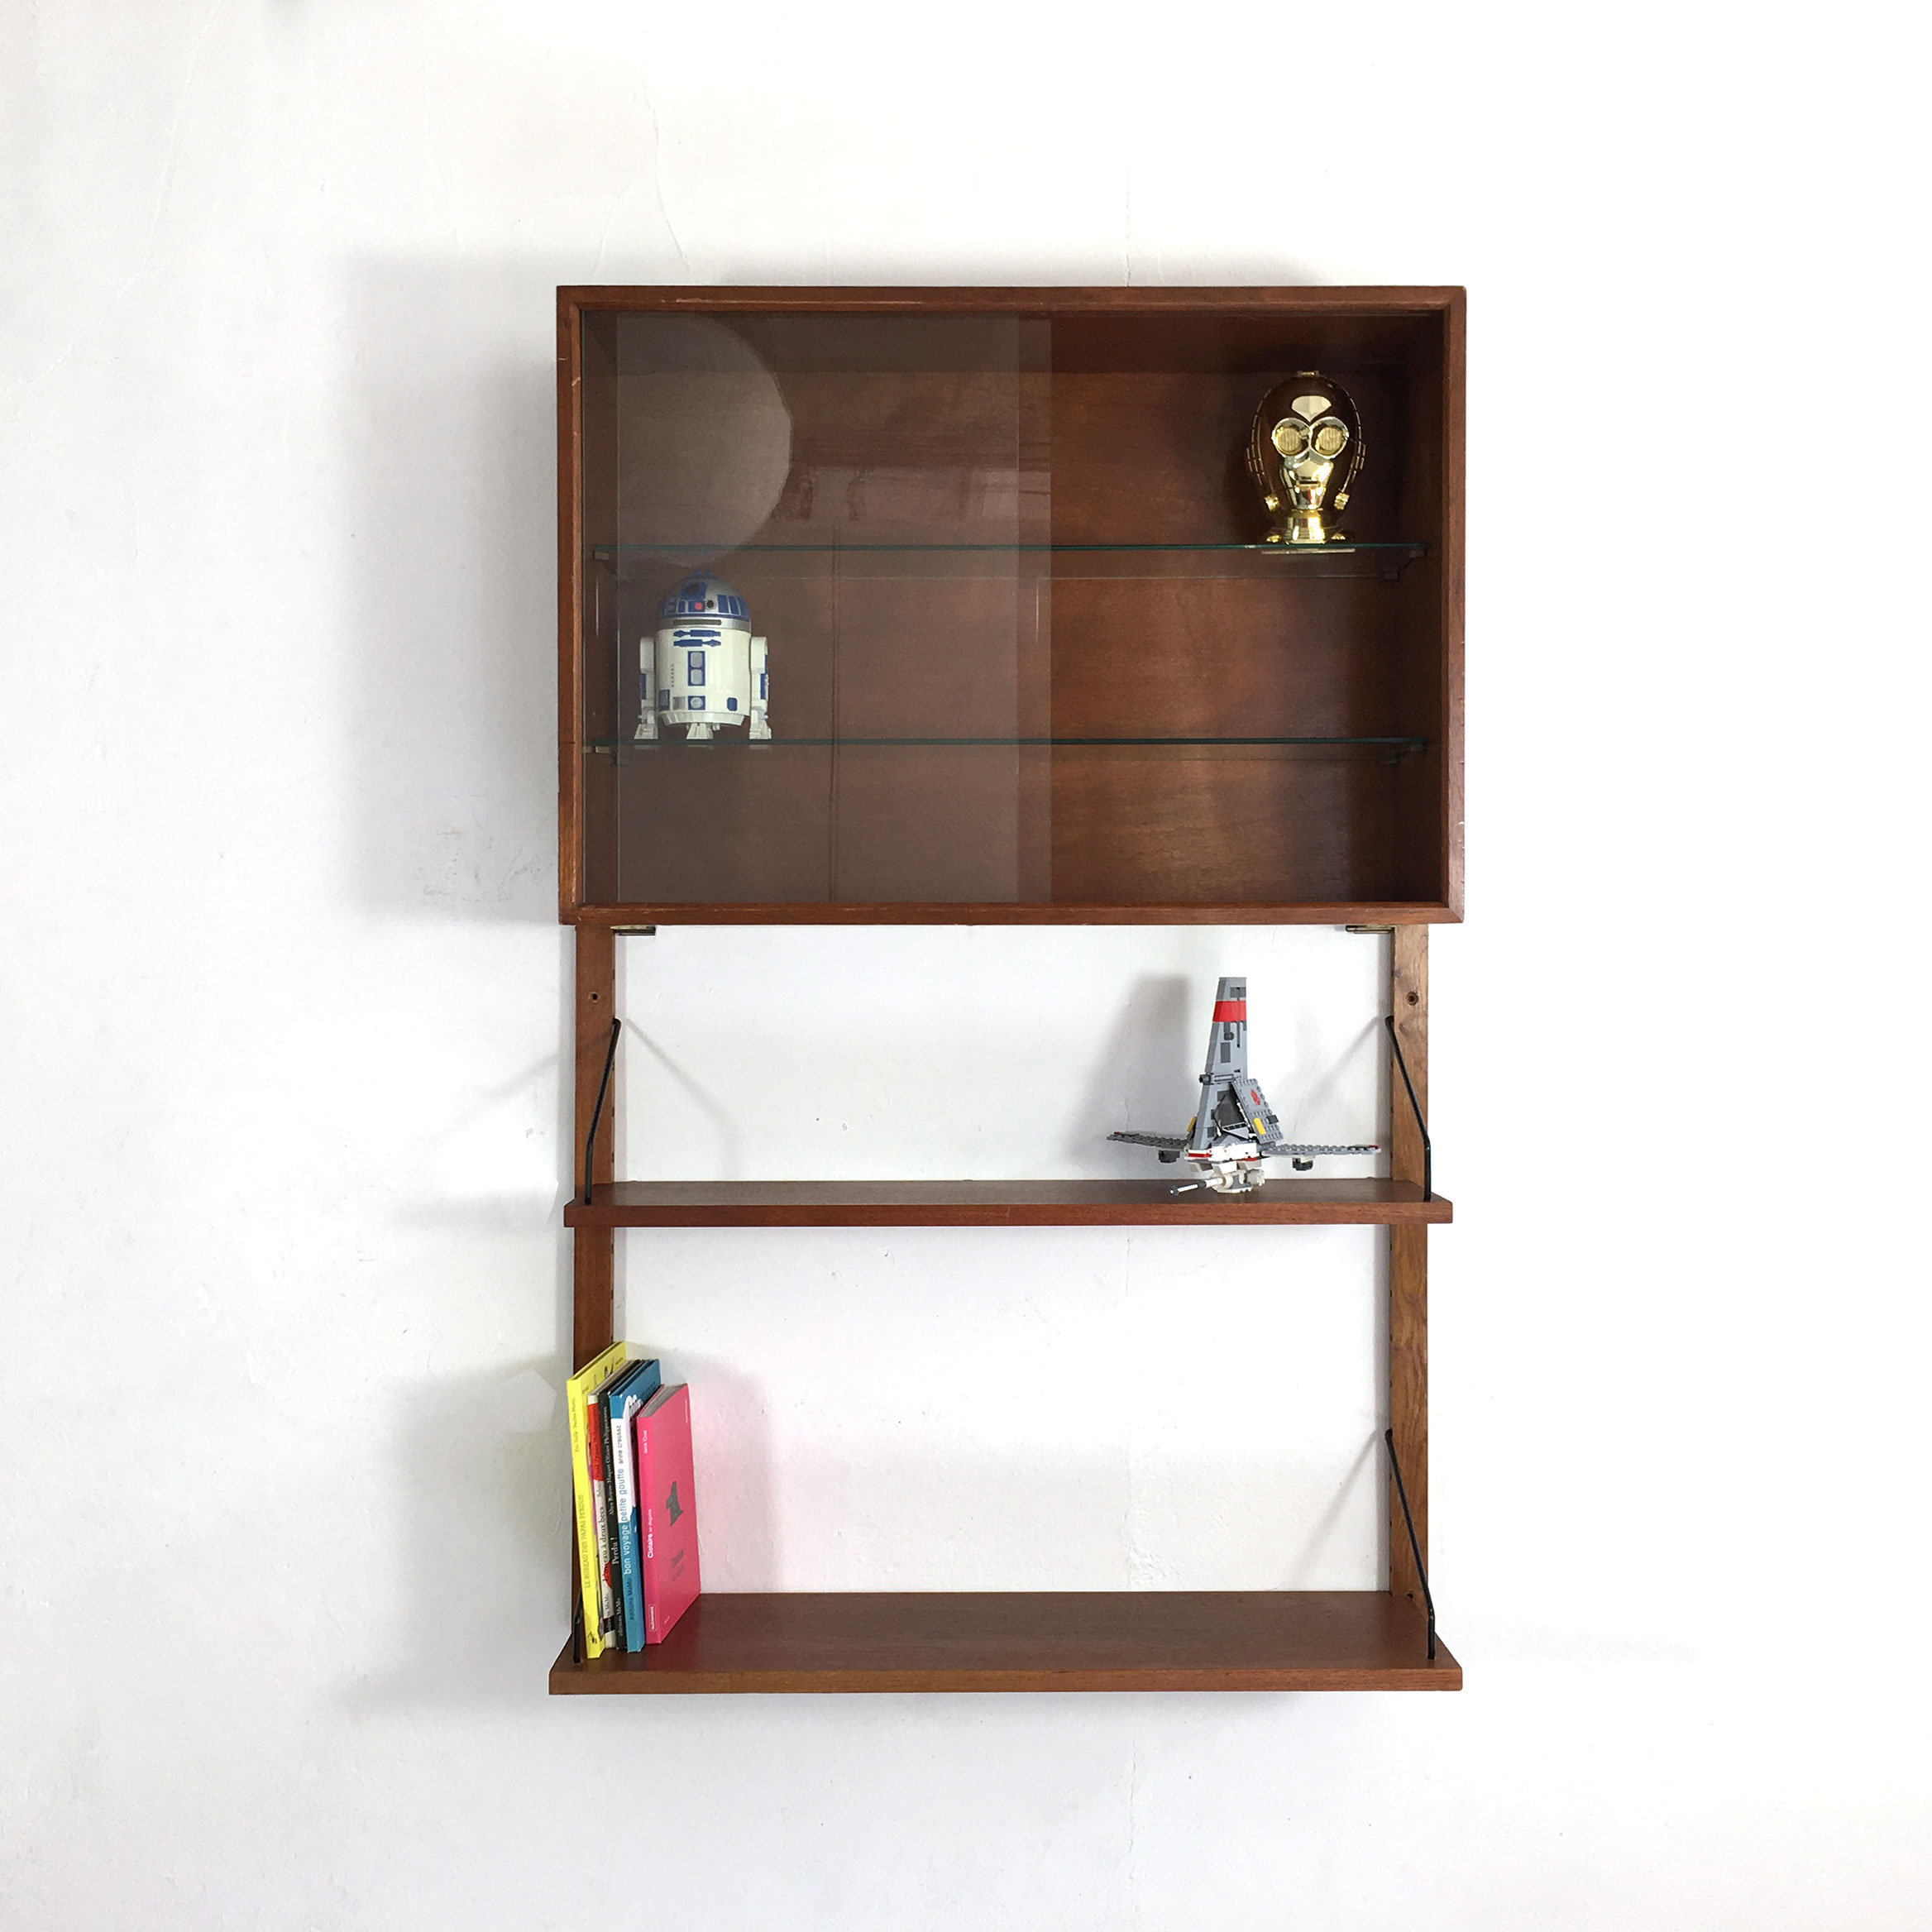 Royal wall unit by Poul Cadovius.